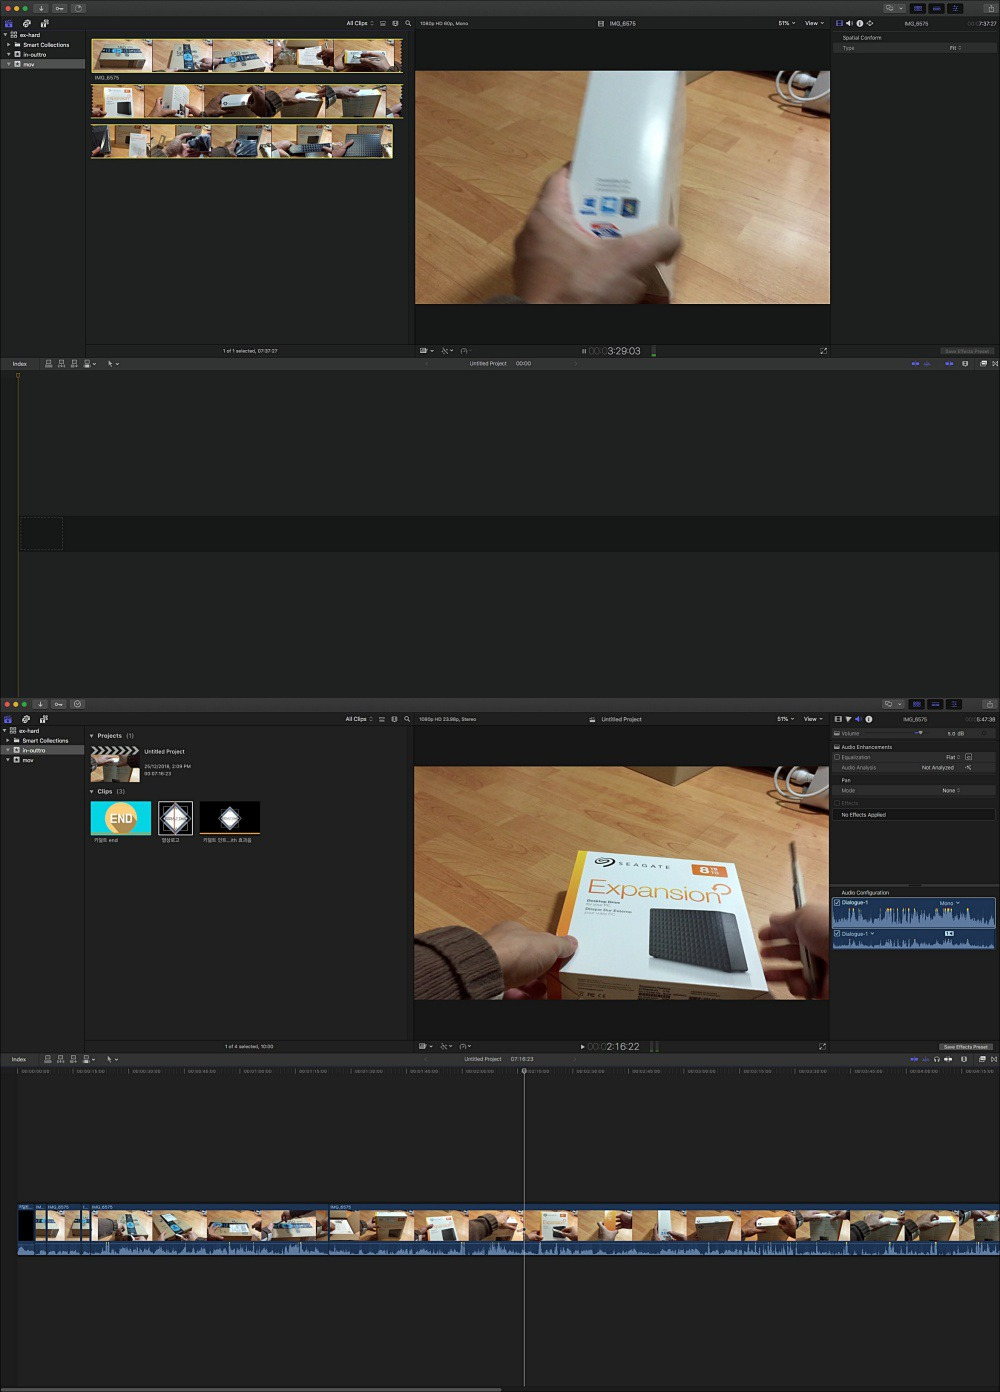 #FCPX 10.4.4